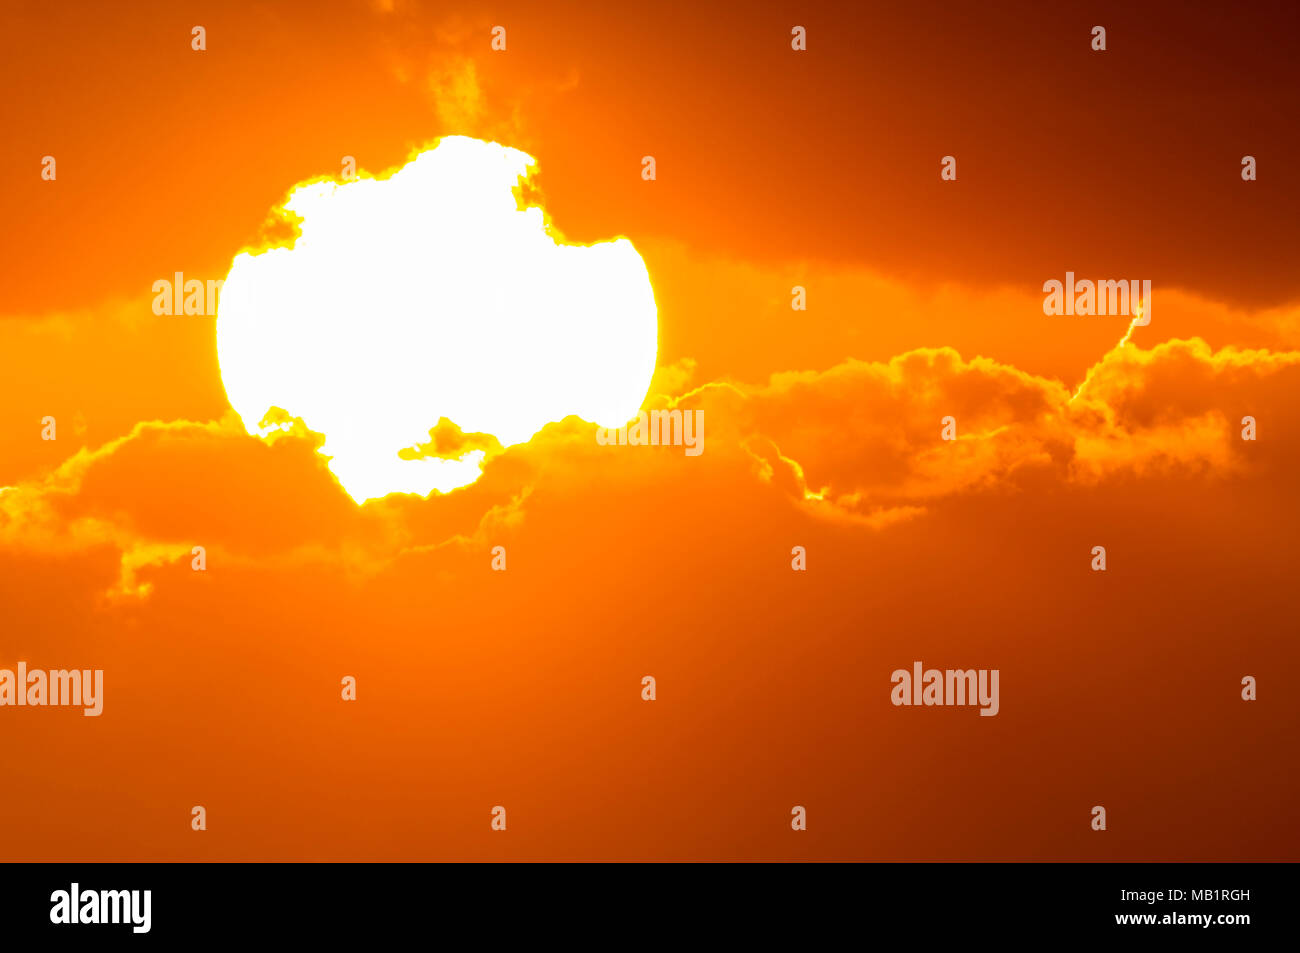 Closeup of the glowing bright sun, low in the sky, partially covered by clouds just before it sets. - Stock Image